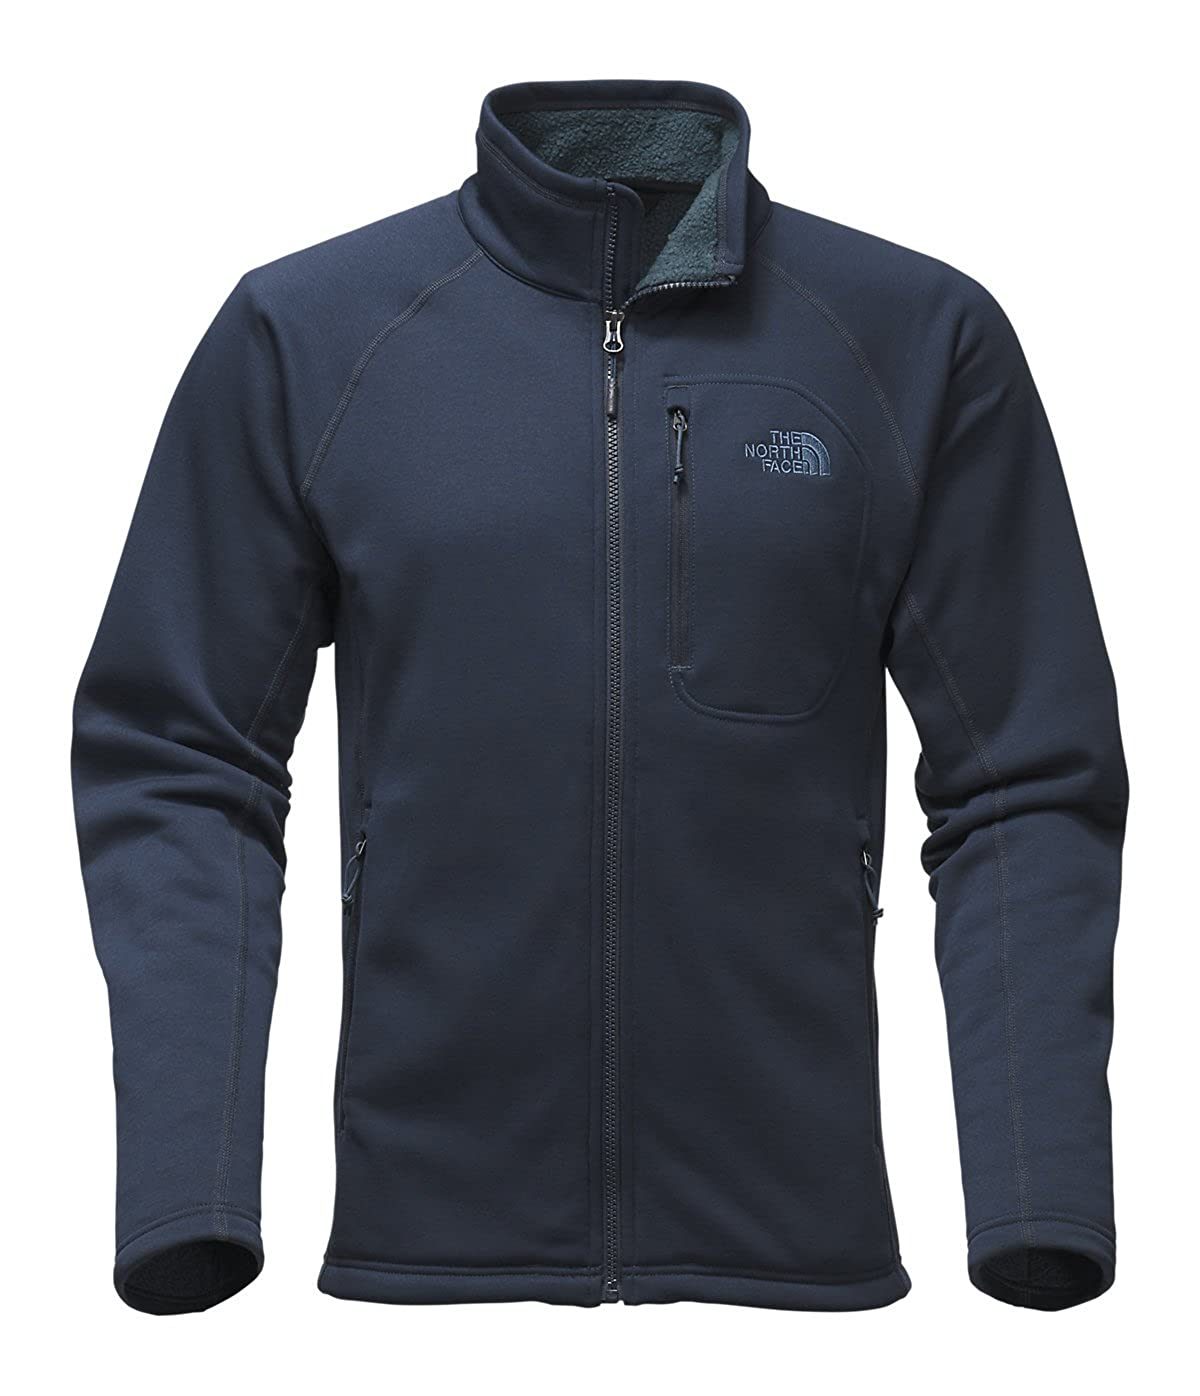 974d72baead0 Amazon.com  The North Face Men s Timber Full-Zip Jacket  Clothing